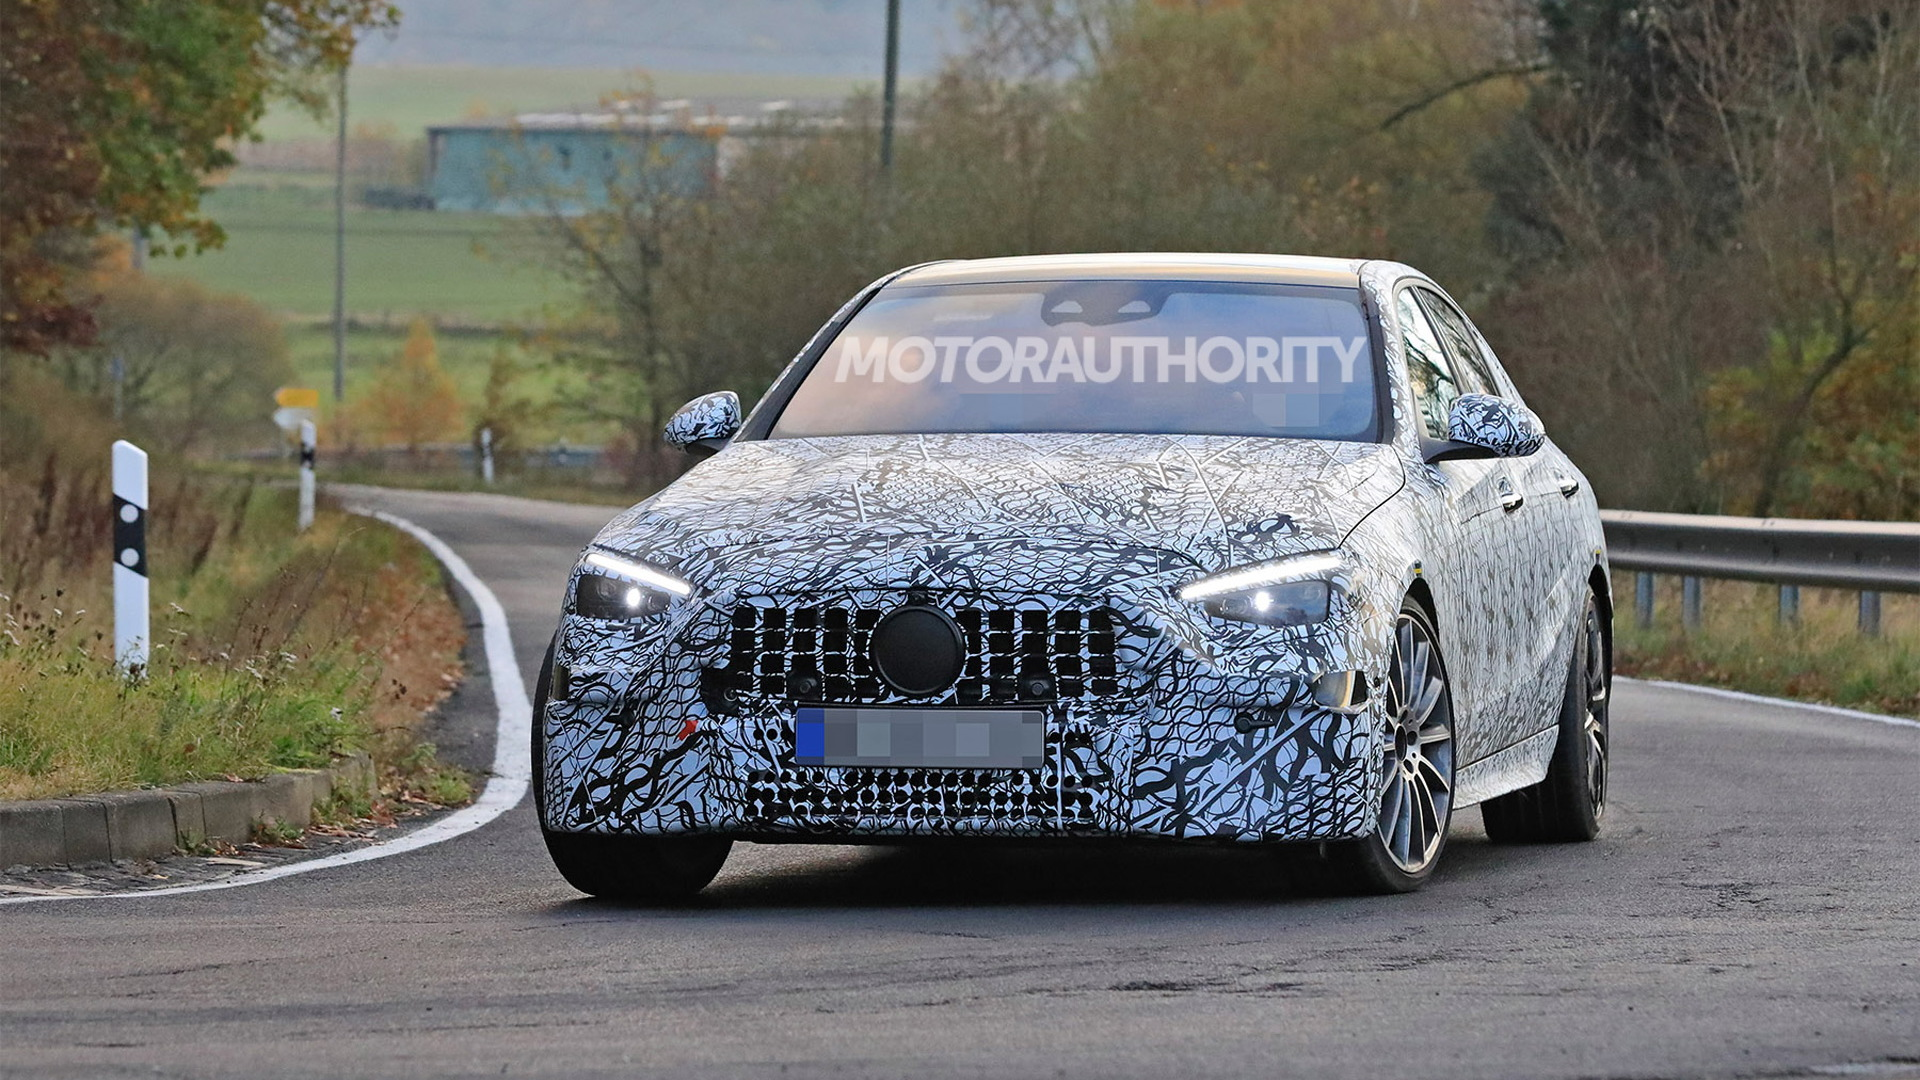 2022 Mercedes-AMG C53 spy shots - Photo credit: S. Baldauf/SB-Medien